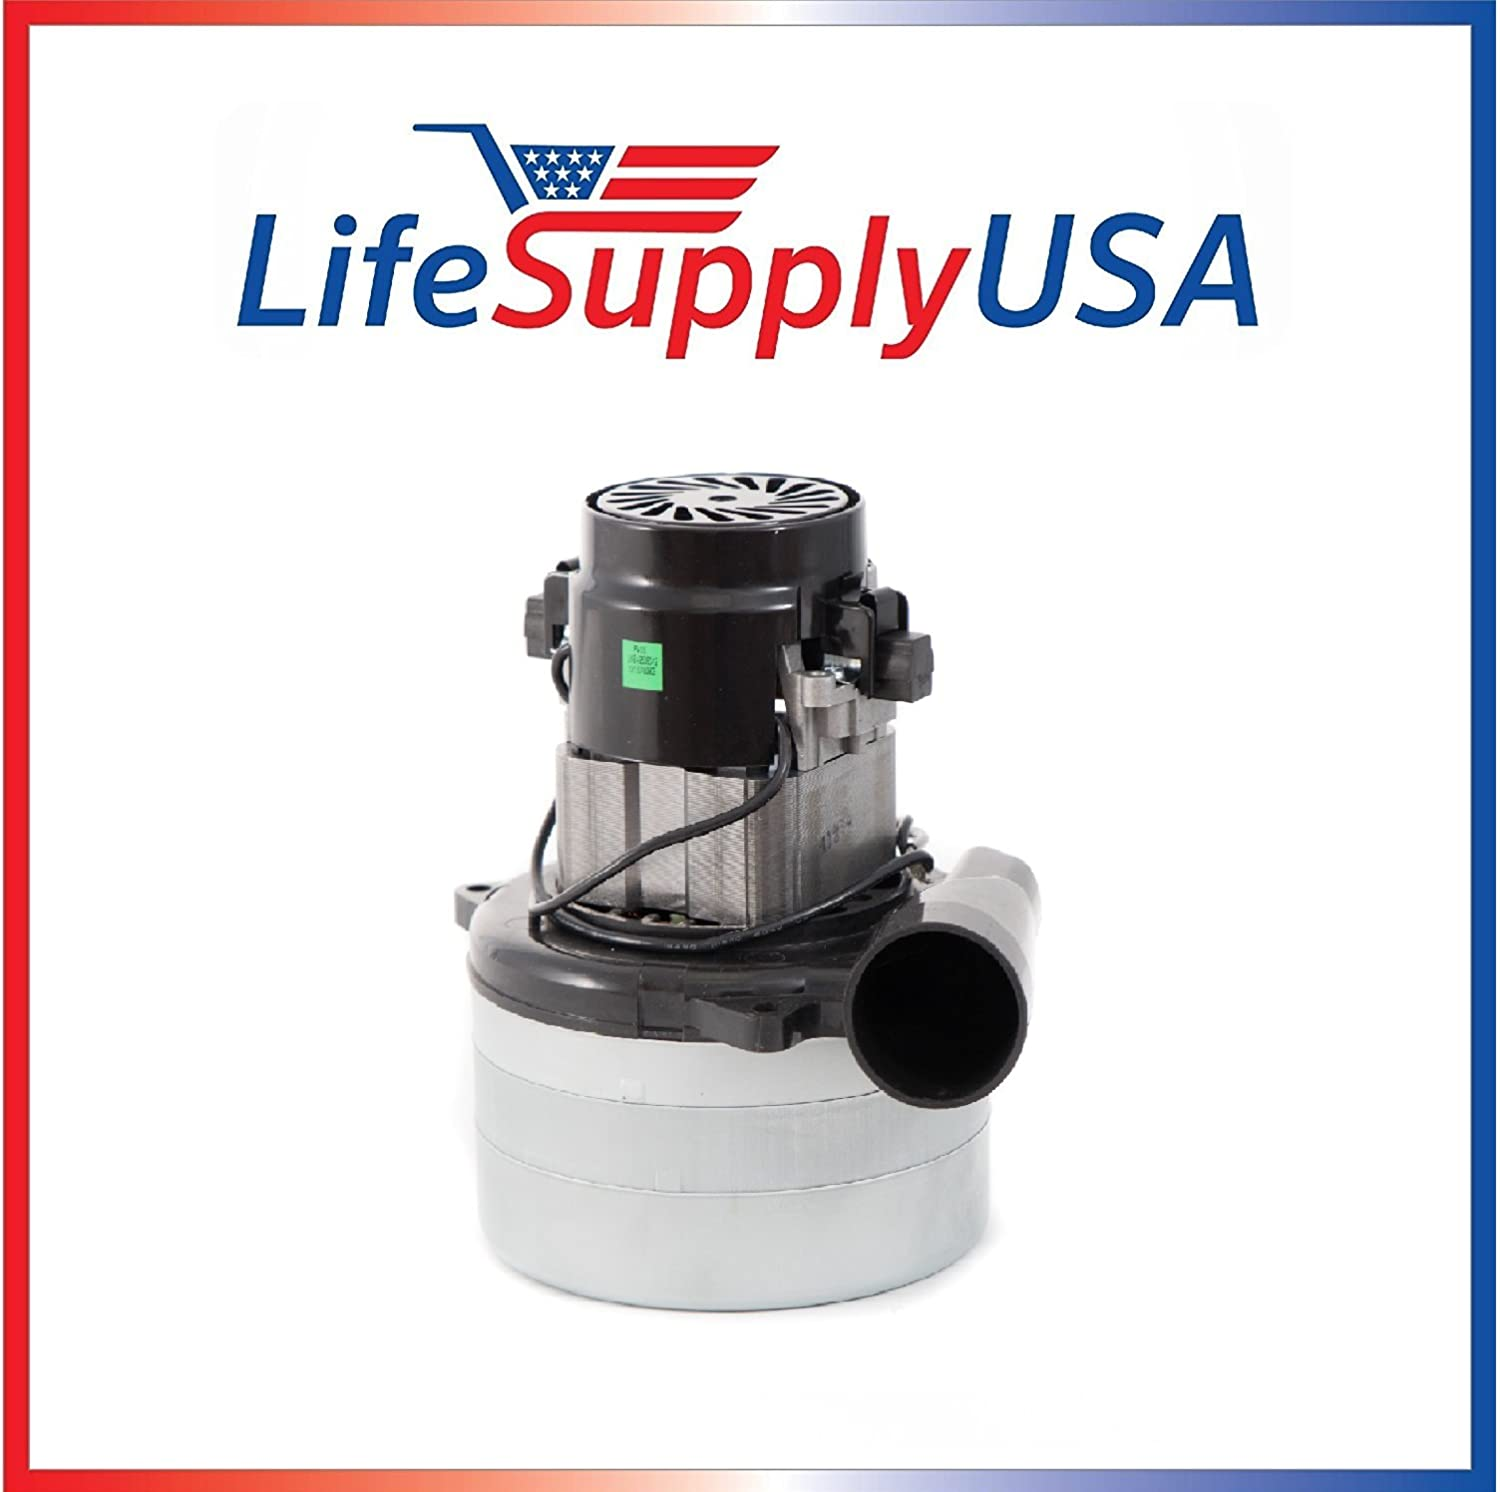 Central Vac Vacuum Motor 3 STAGE with Wires Will Fit Most Brands 5.7 120 Volt 1400 Watt by LifeSupplyUSA